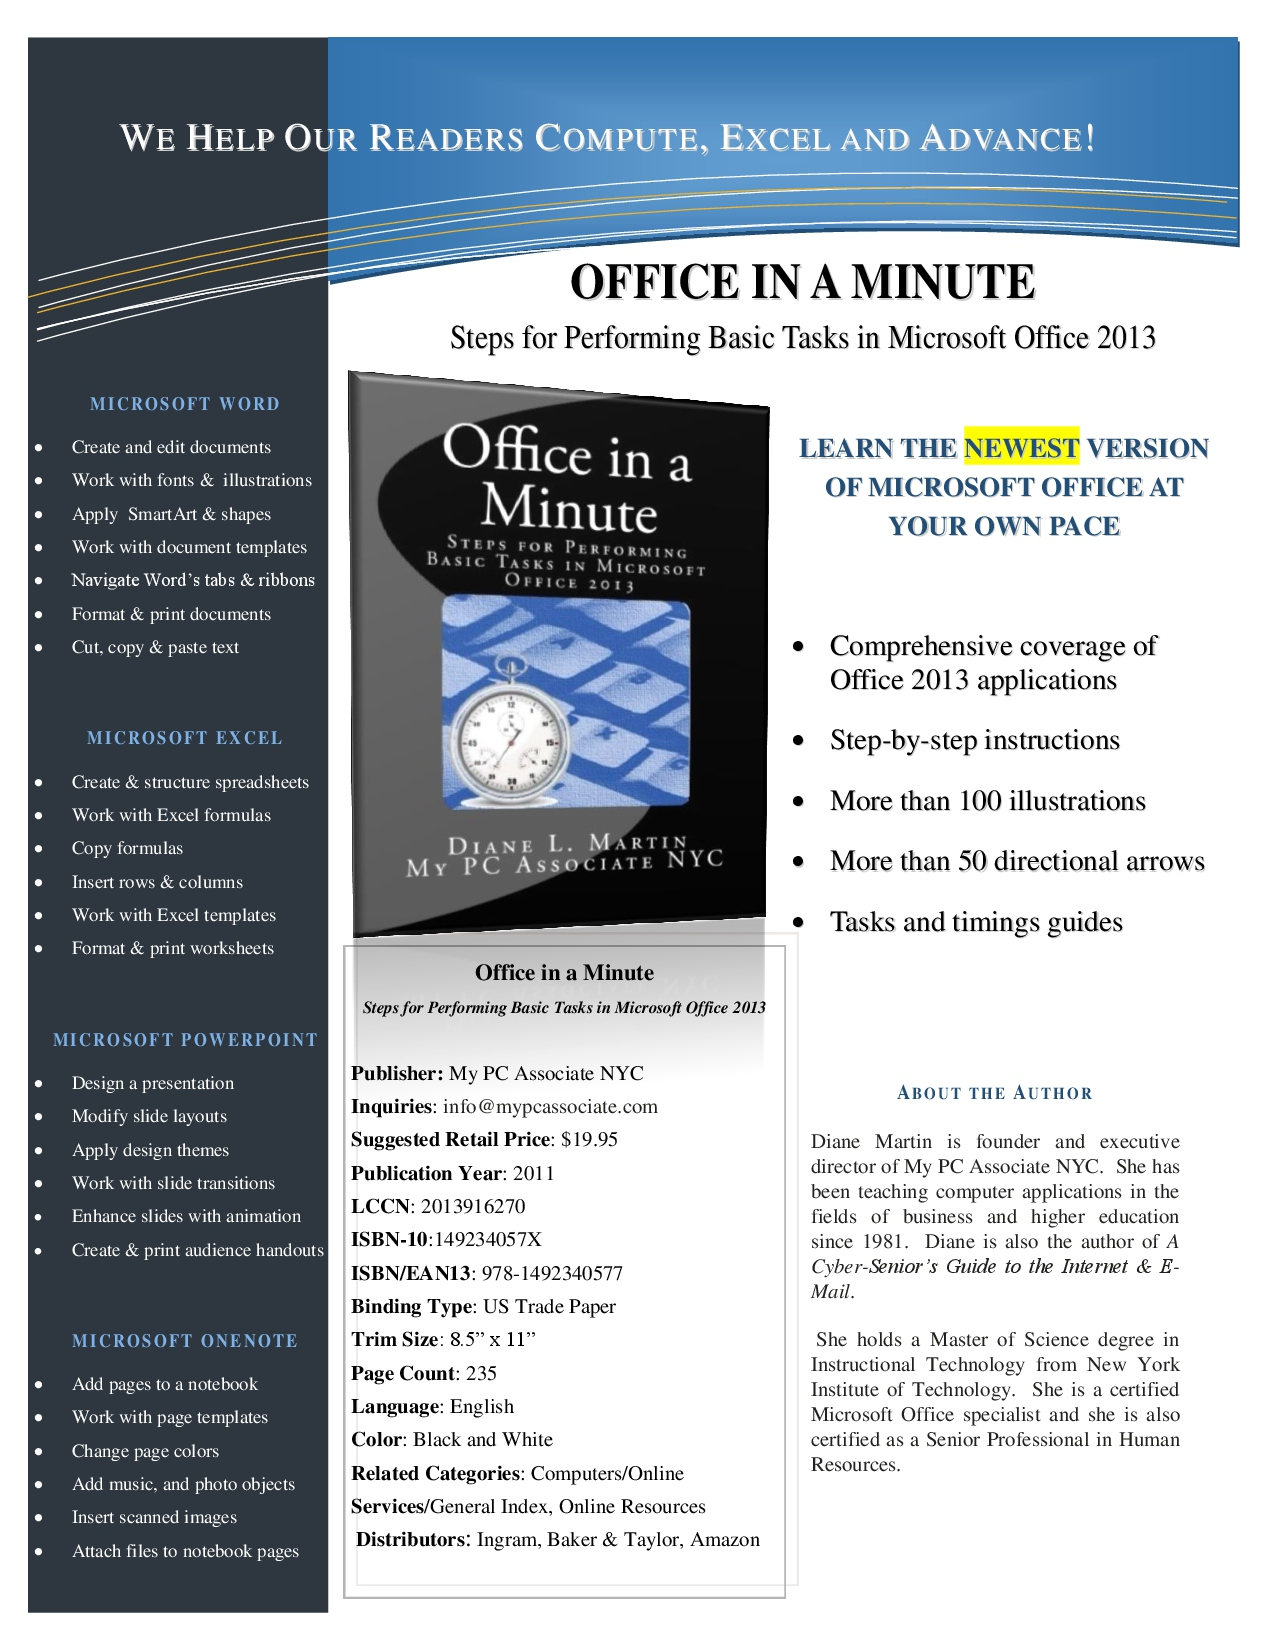 OFFICE IN A MINUTE SELL SHEET JUNE 2013 EDITION-1